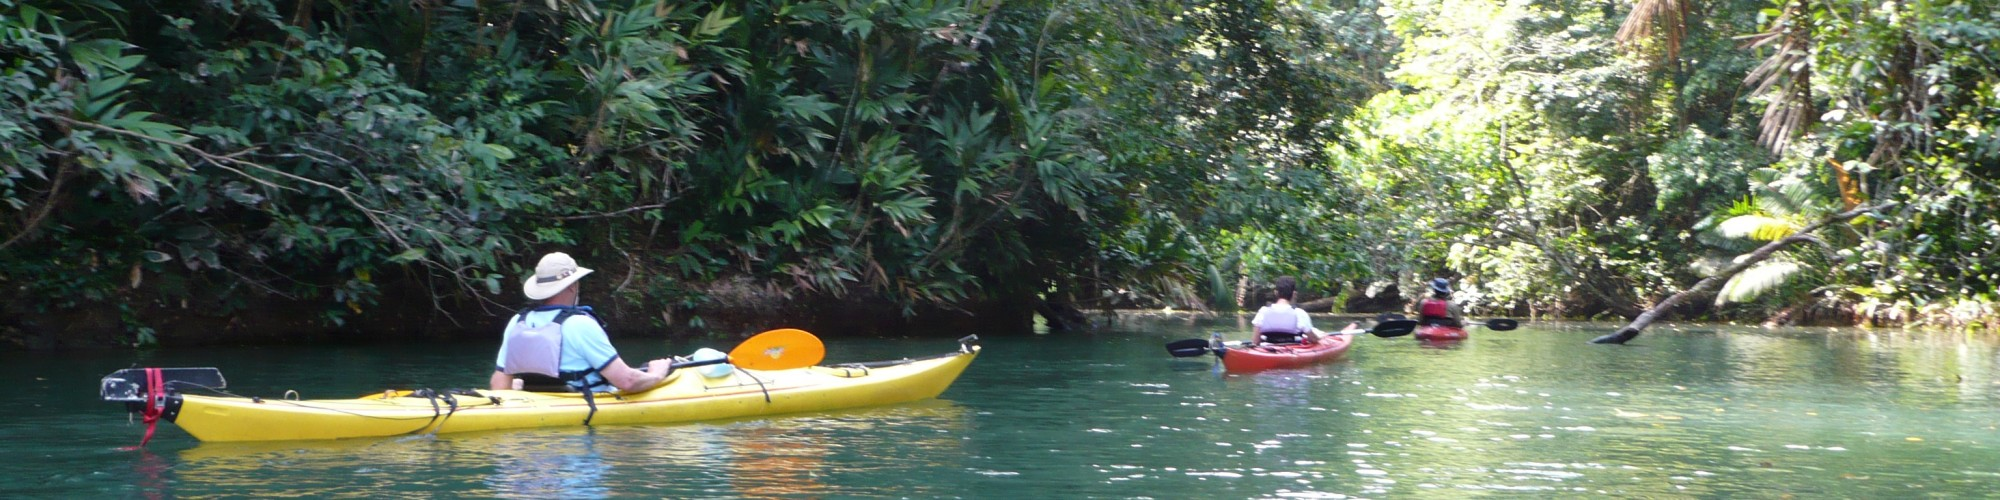 Kayaking in Panama